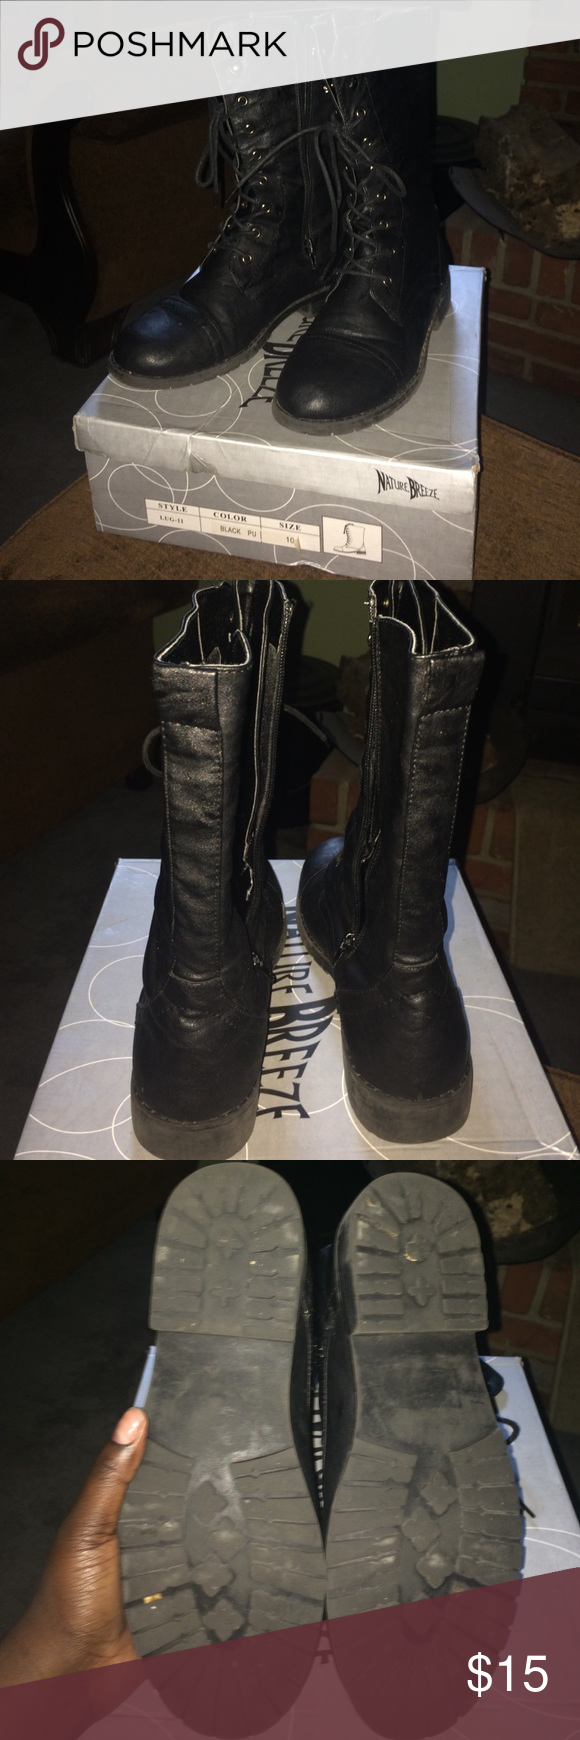 Black Combat Boots Black Combat boots with zipper on the side of the boots. The boots do have strings to adjust the weight upon the leg or foot. Shoes Combat & Moto Boots